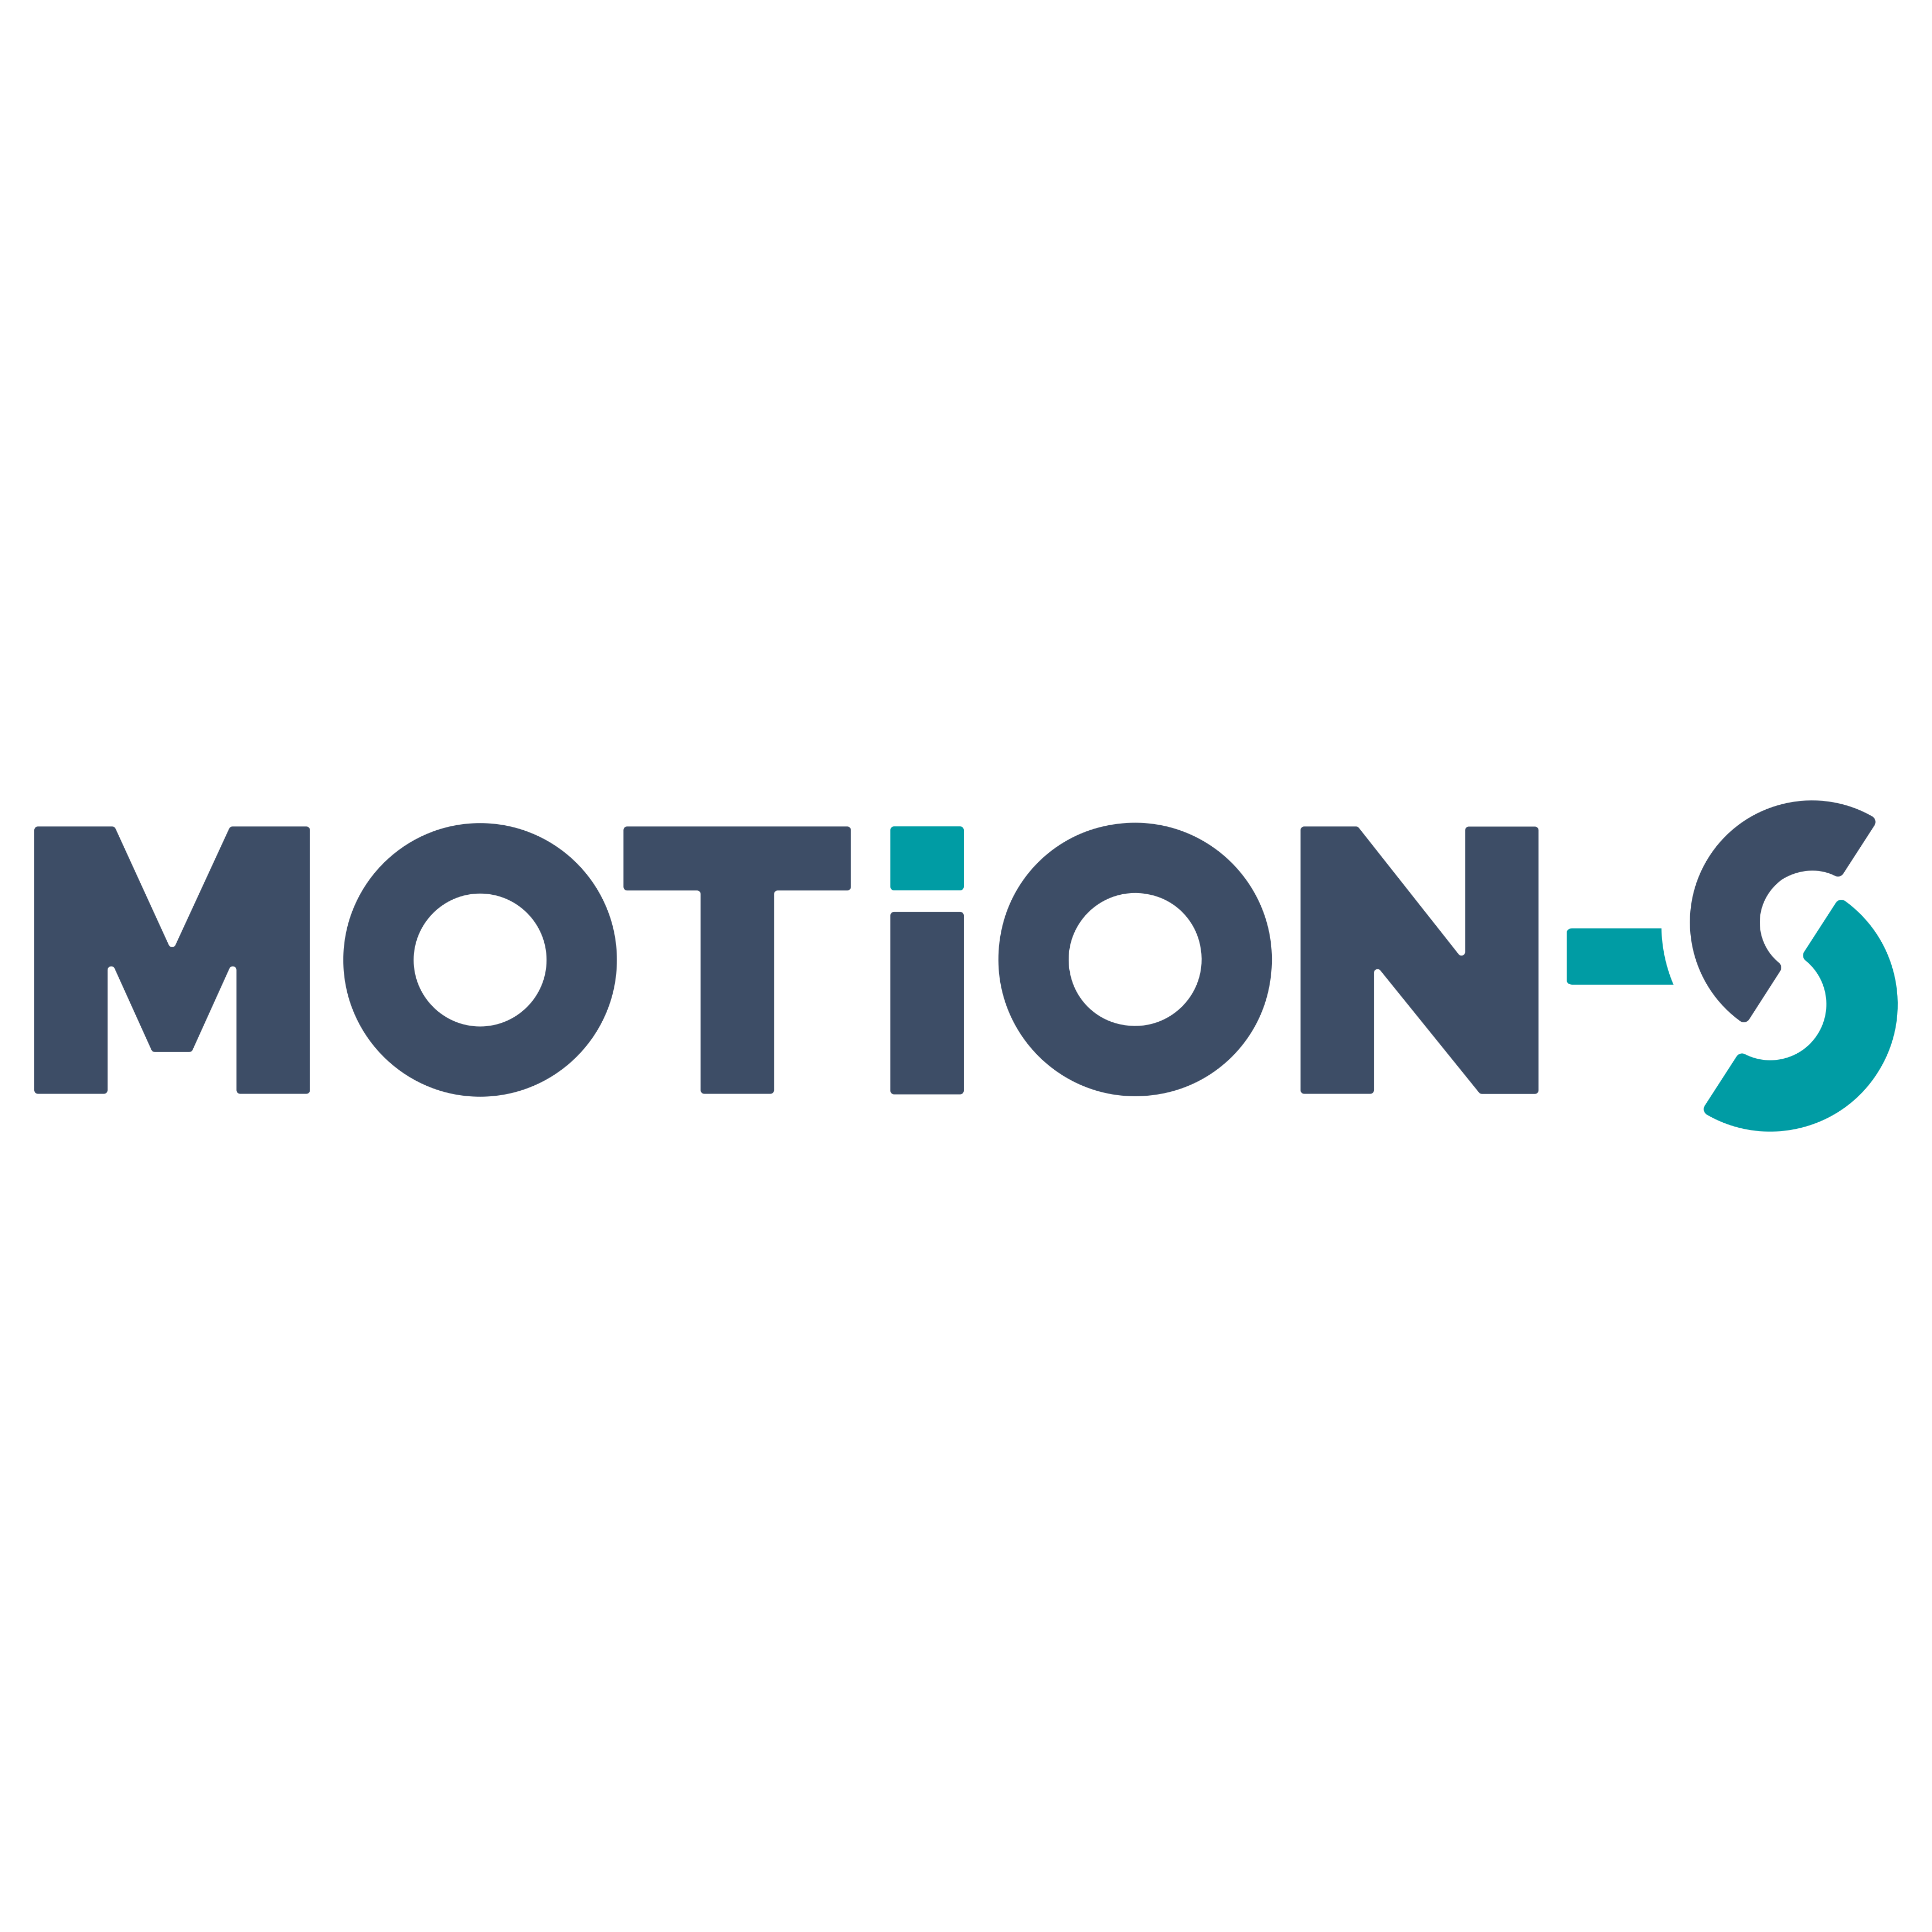 Motion-S S.A.